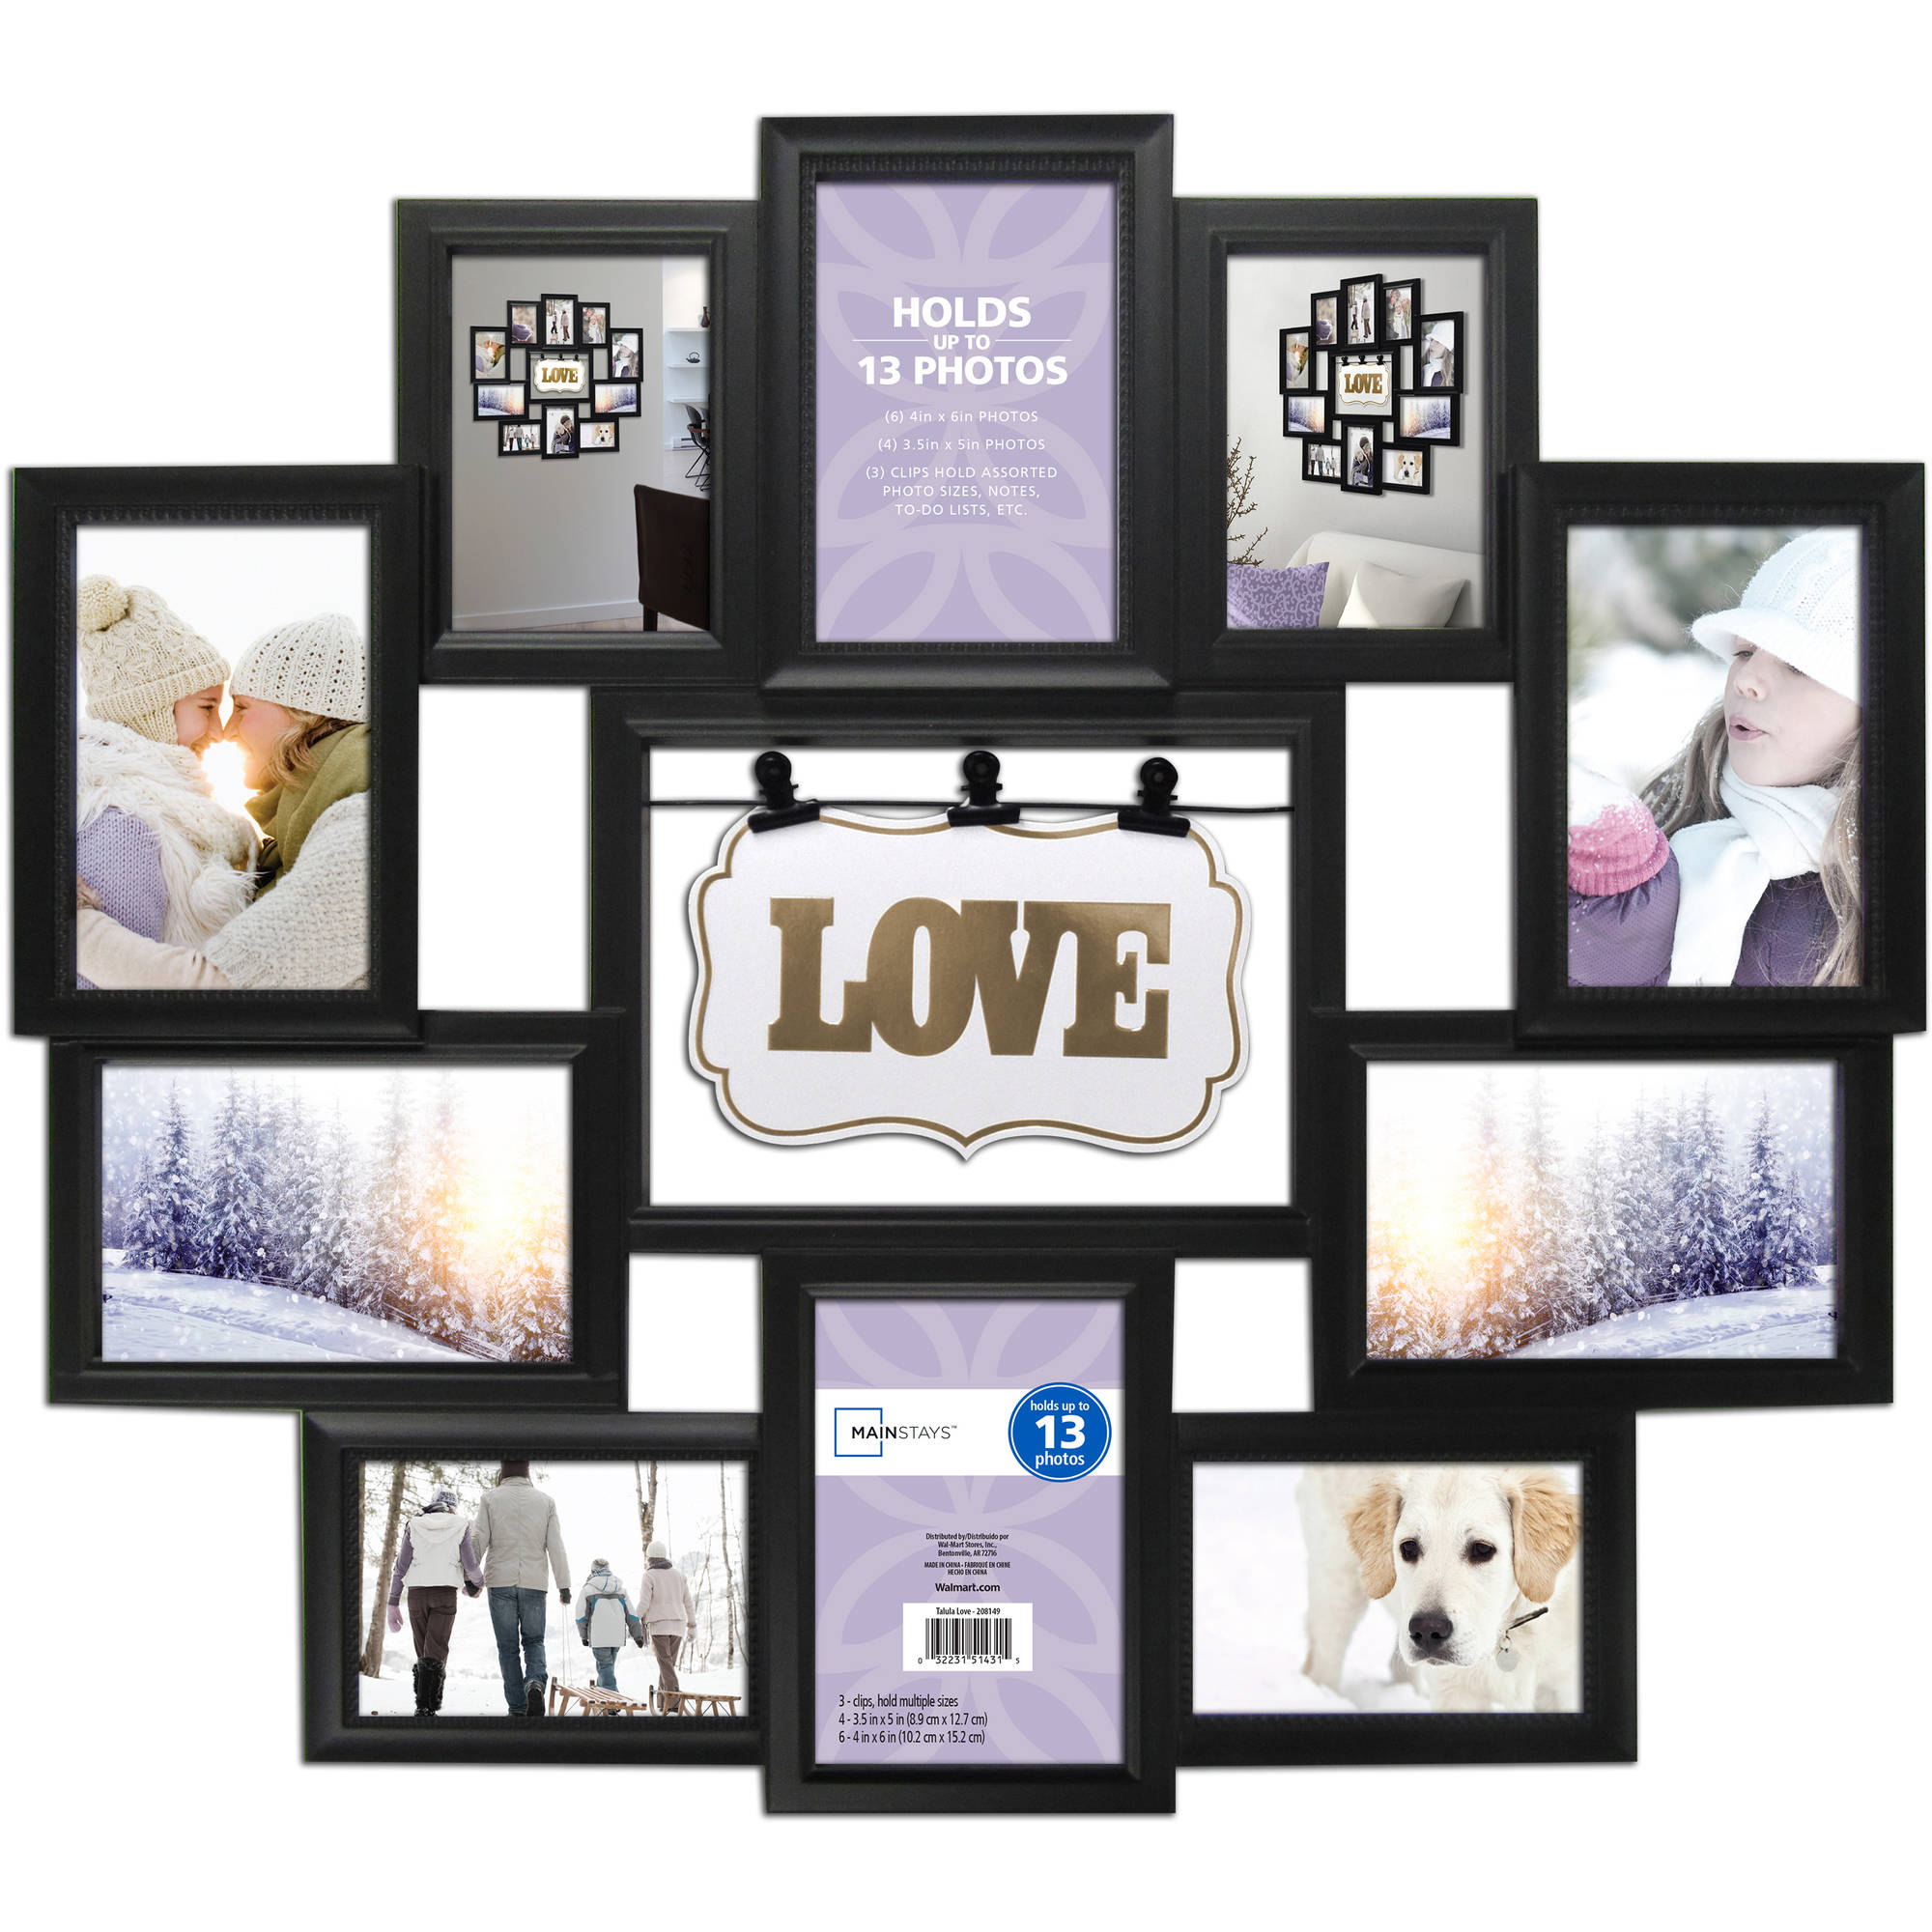 Wall picture frame collage template our bubble life how for Online purchase home decor items